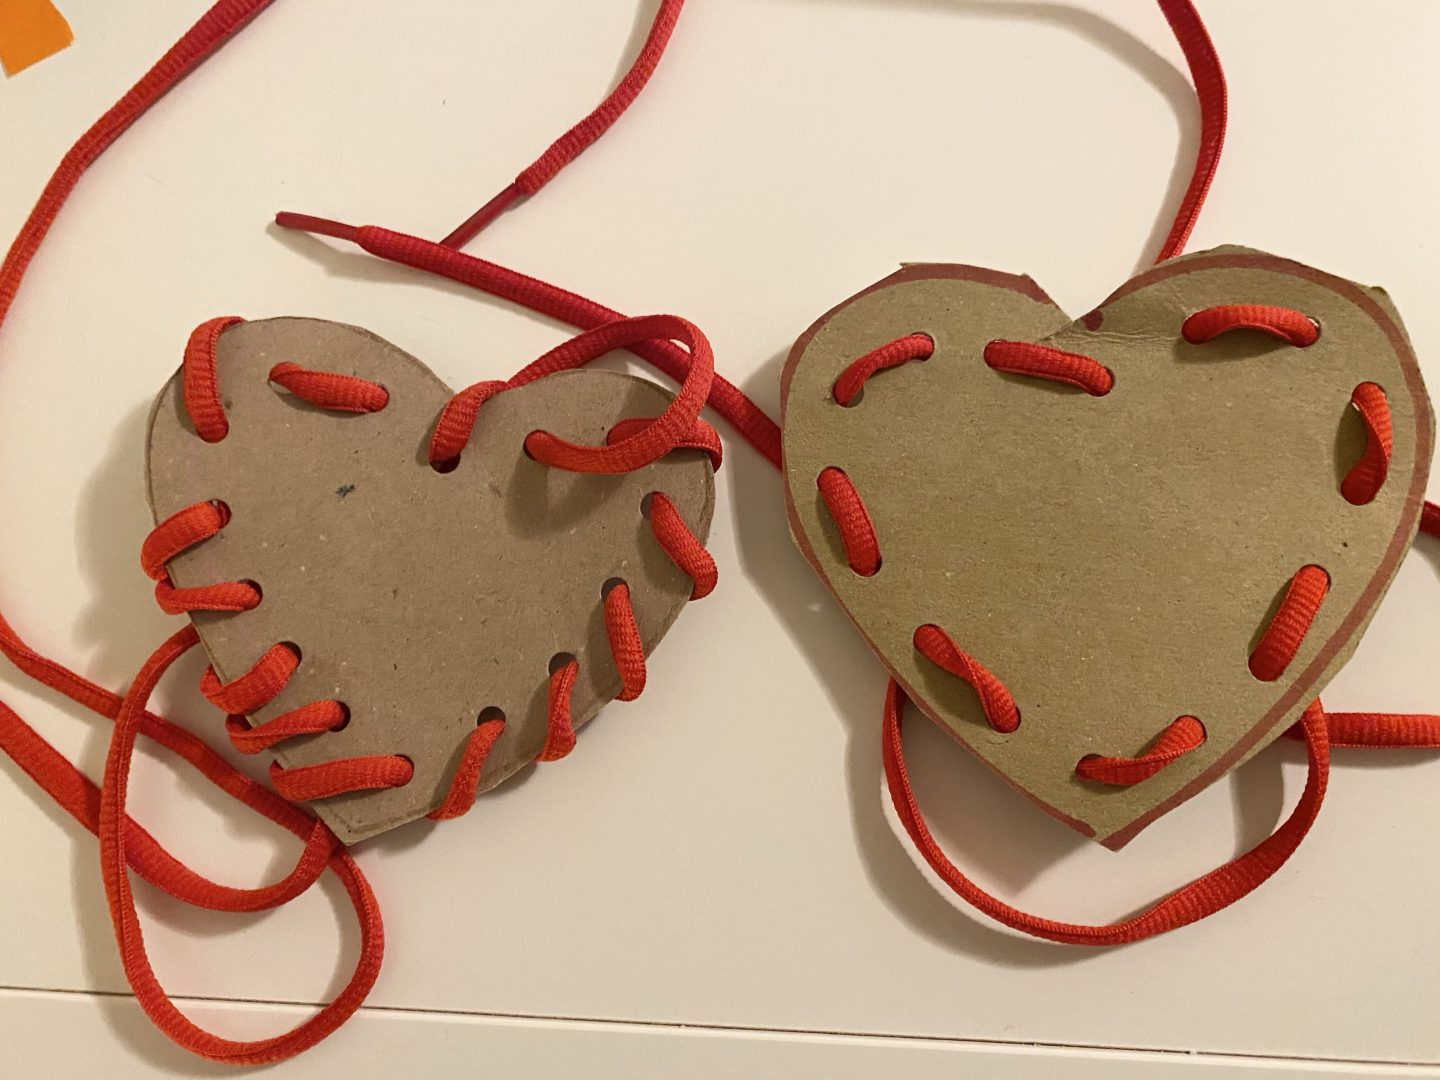 February activates for kids with 2 cardboard shaped hearts with red shoelaces threaded through holes